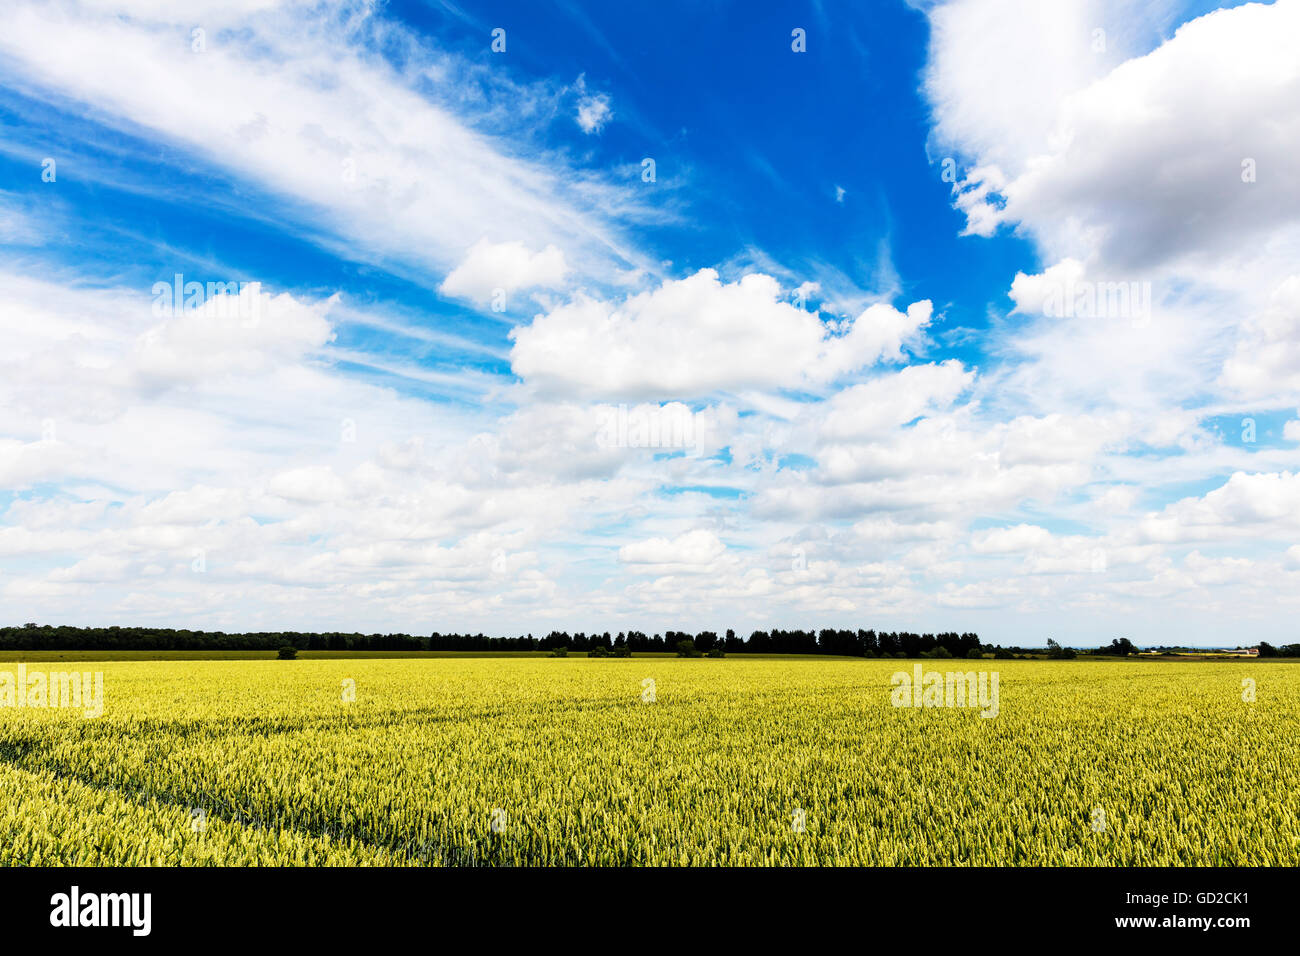 wheat corn field crops crop feed wolds wheatfield UK England GB Farmers field of wheat - Stock Image